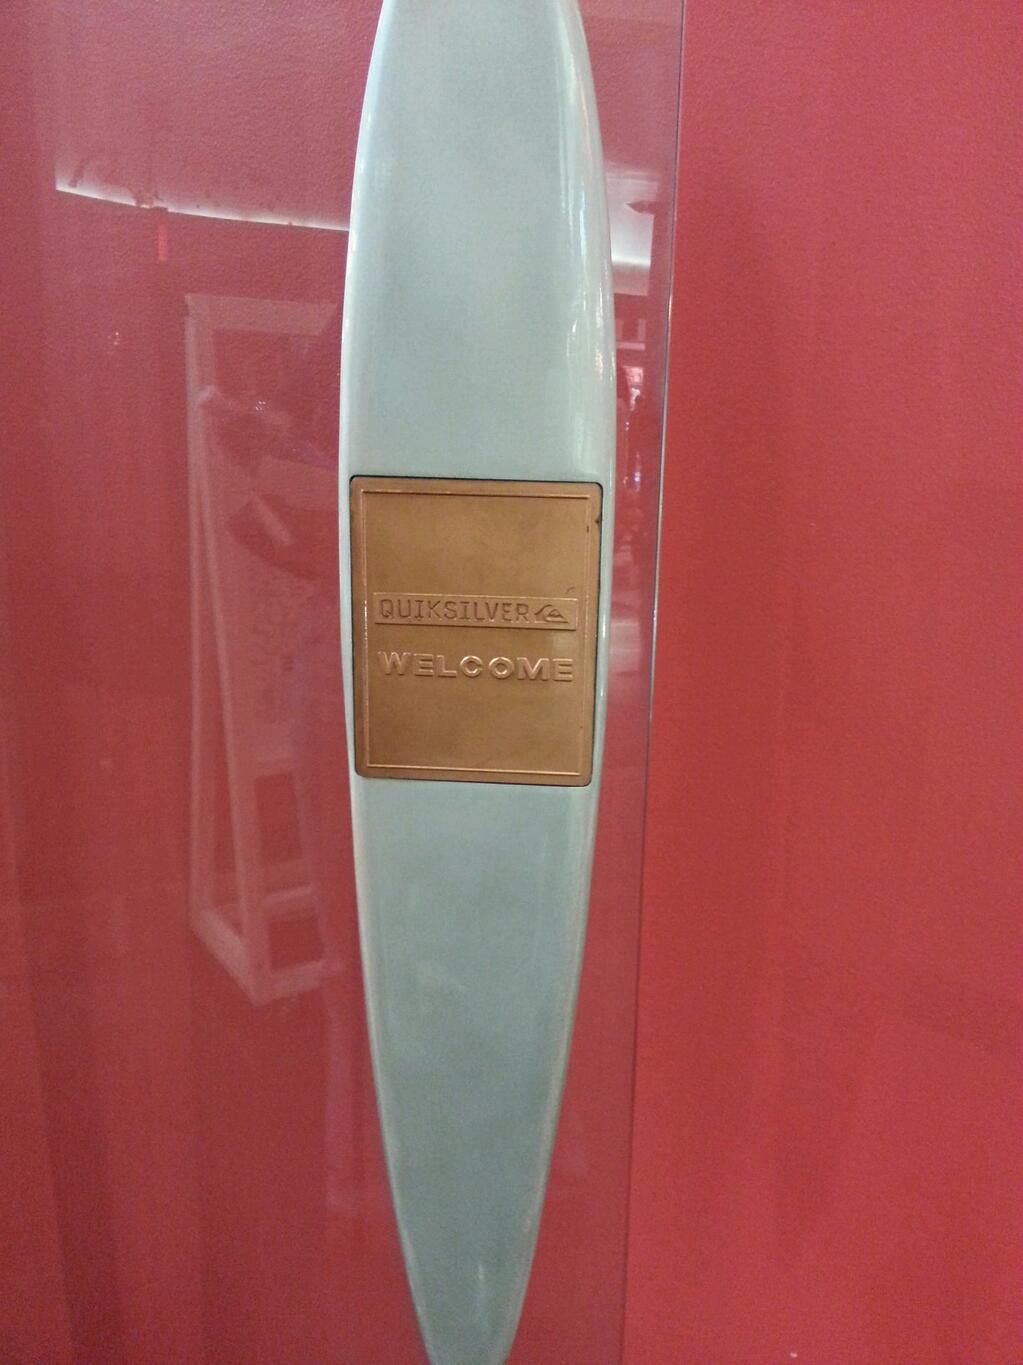 Perfect door handle for Quiksilver store #WGBD http://t.co/g0AAclbVPO